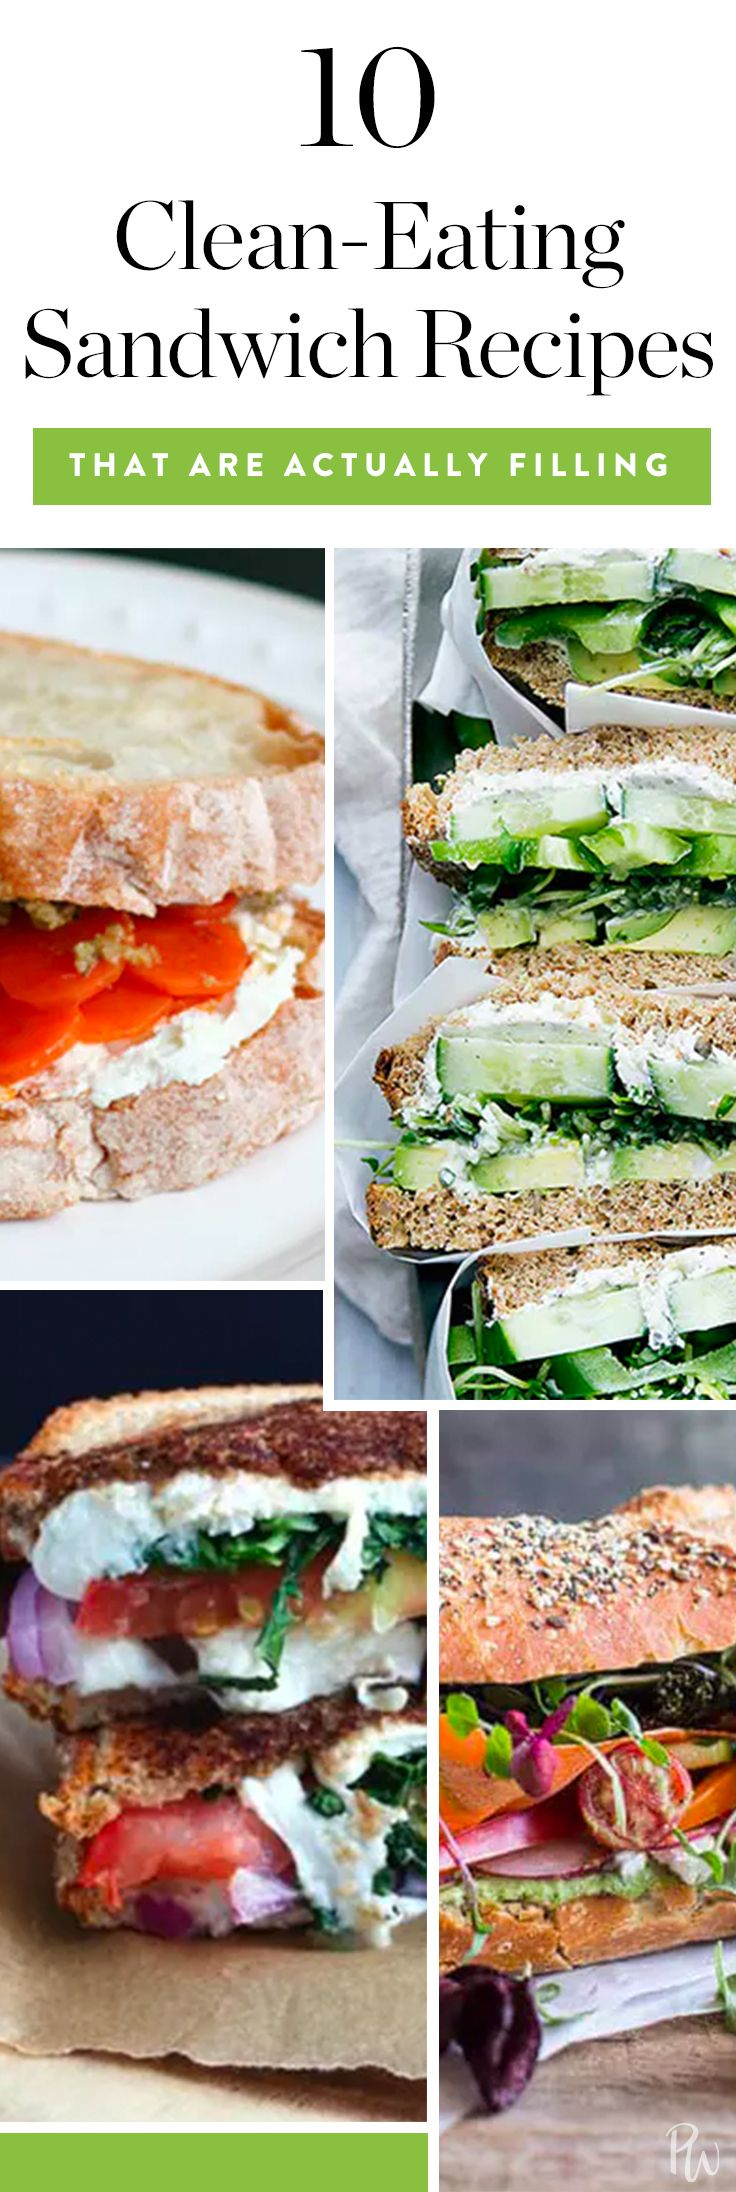 10 Clean-Eating Sandwich Recipes That Are Actually Filling via @PureWow via @PureWow